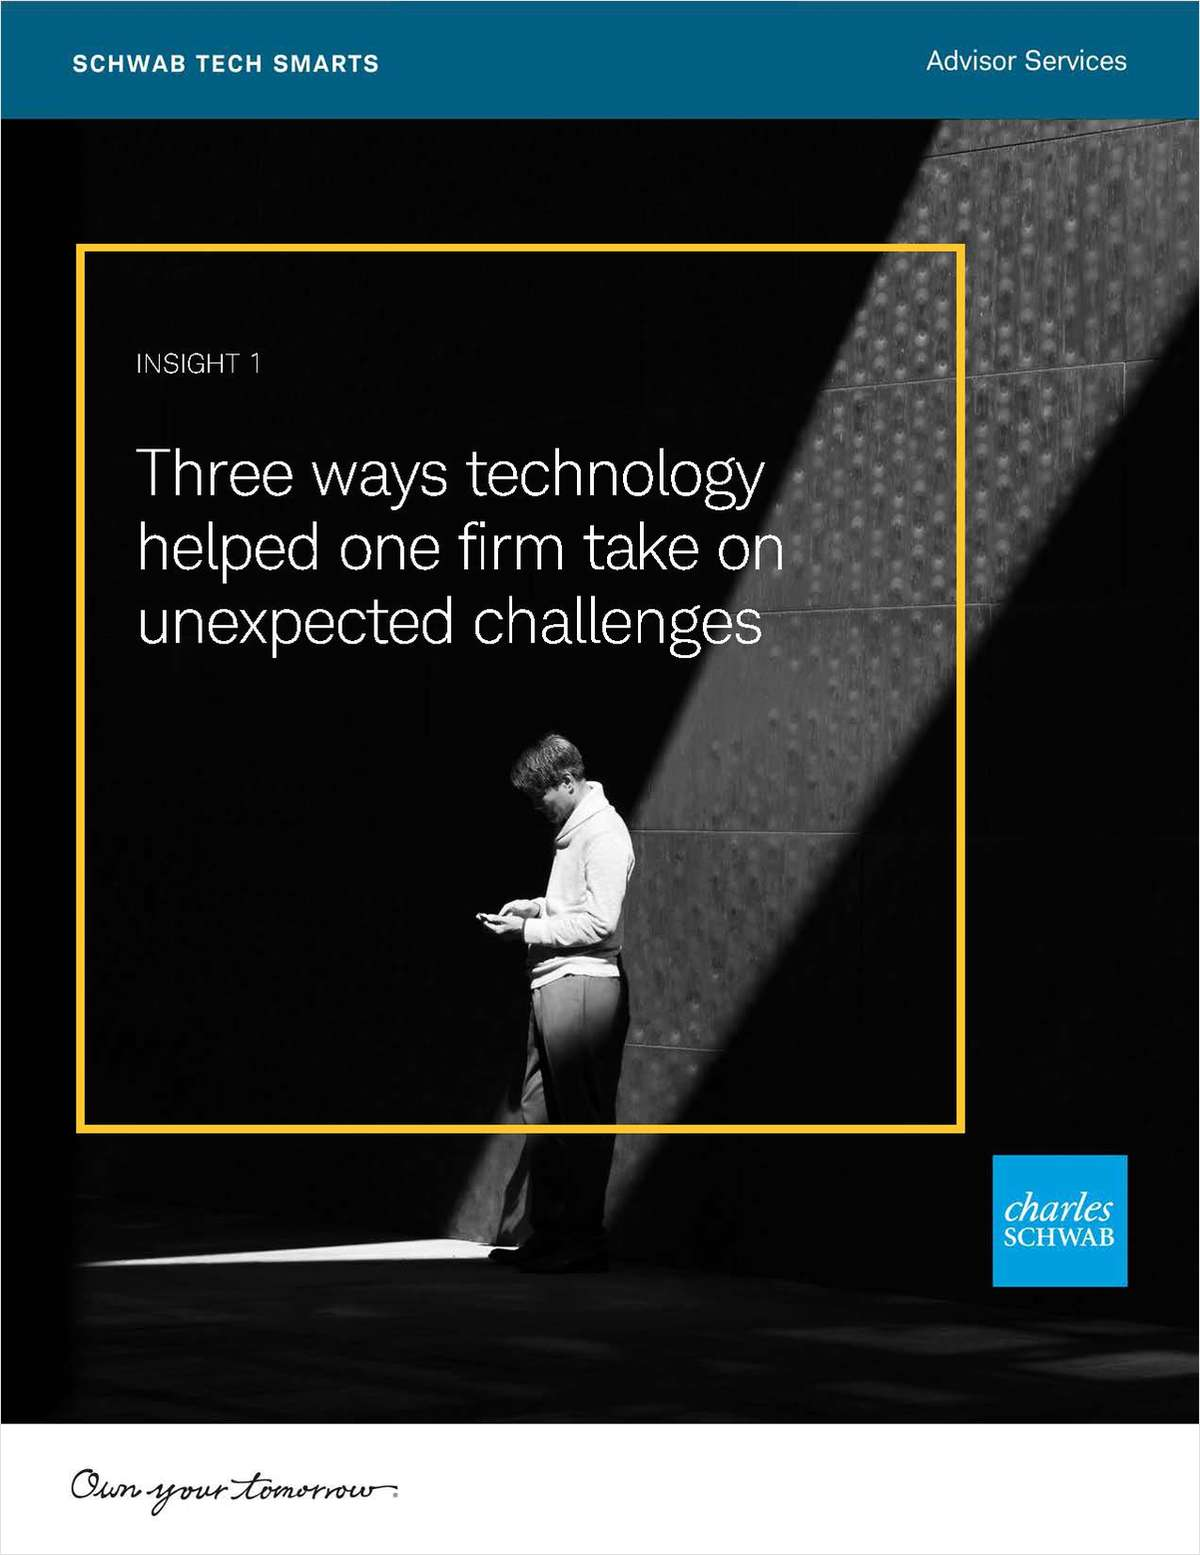 Three Ways Technology Helped One Firm Take on Unexpected Challenges